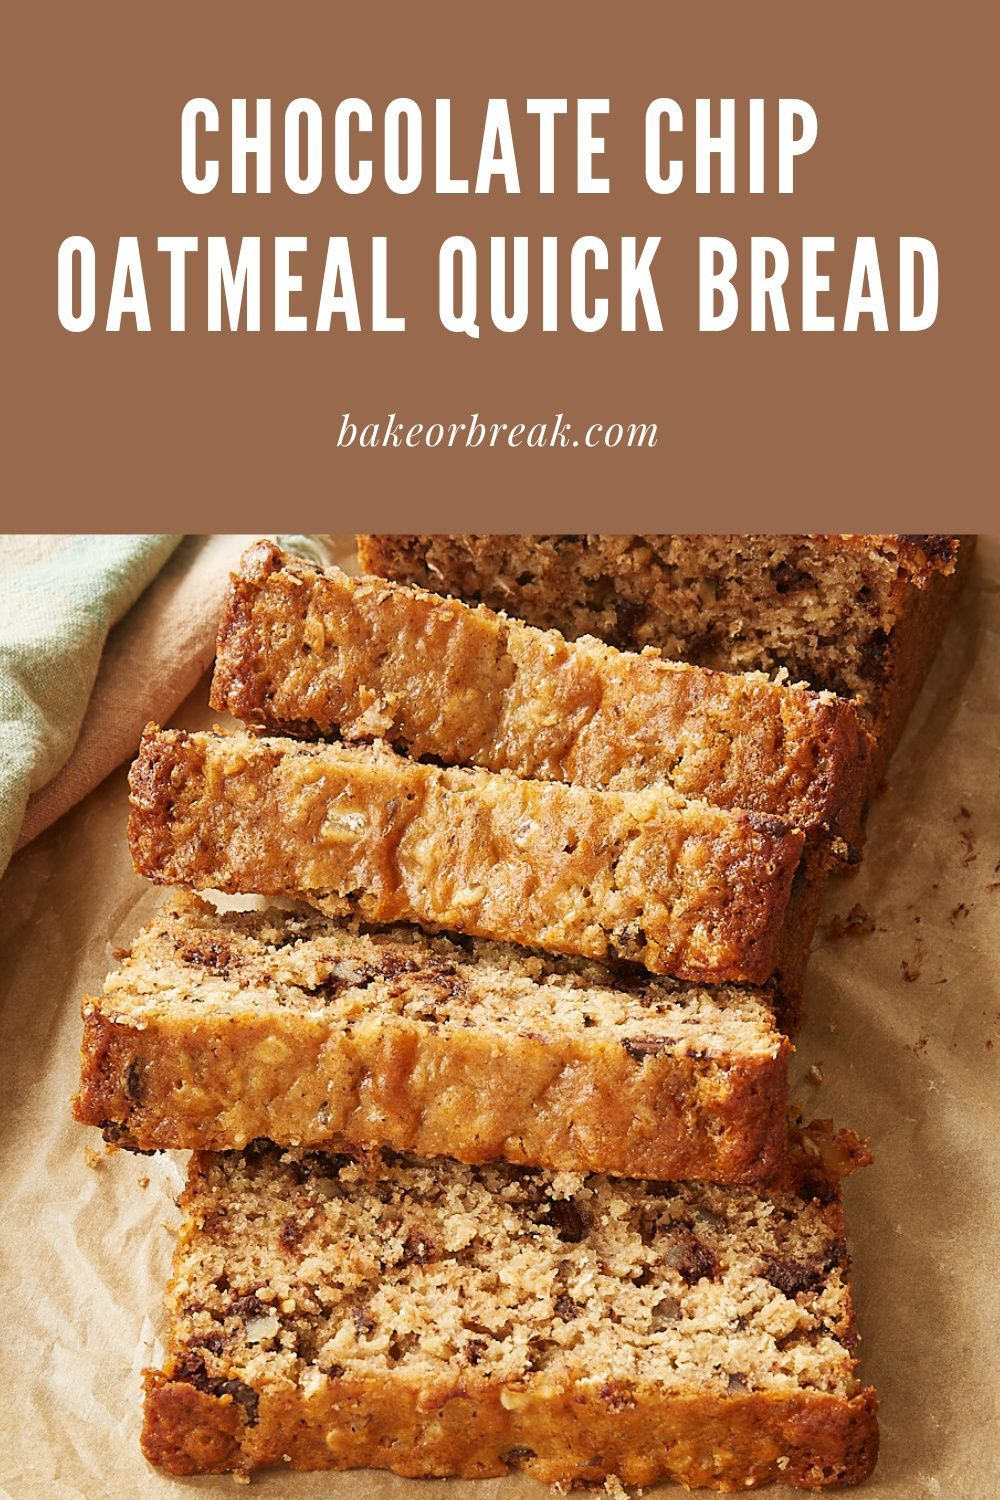 Pin On Recipes From Bake Or Break